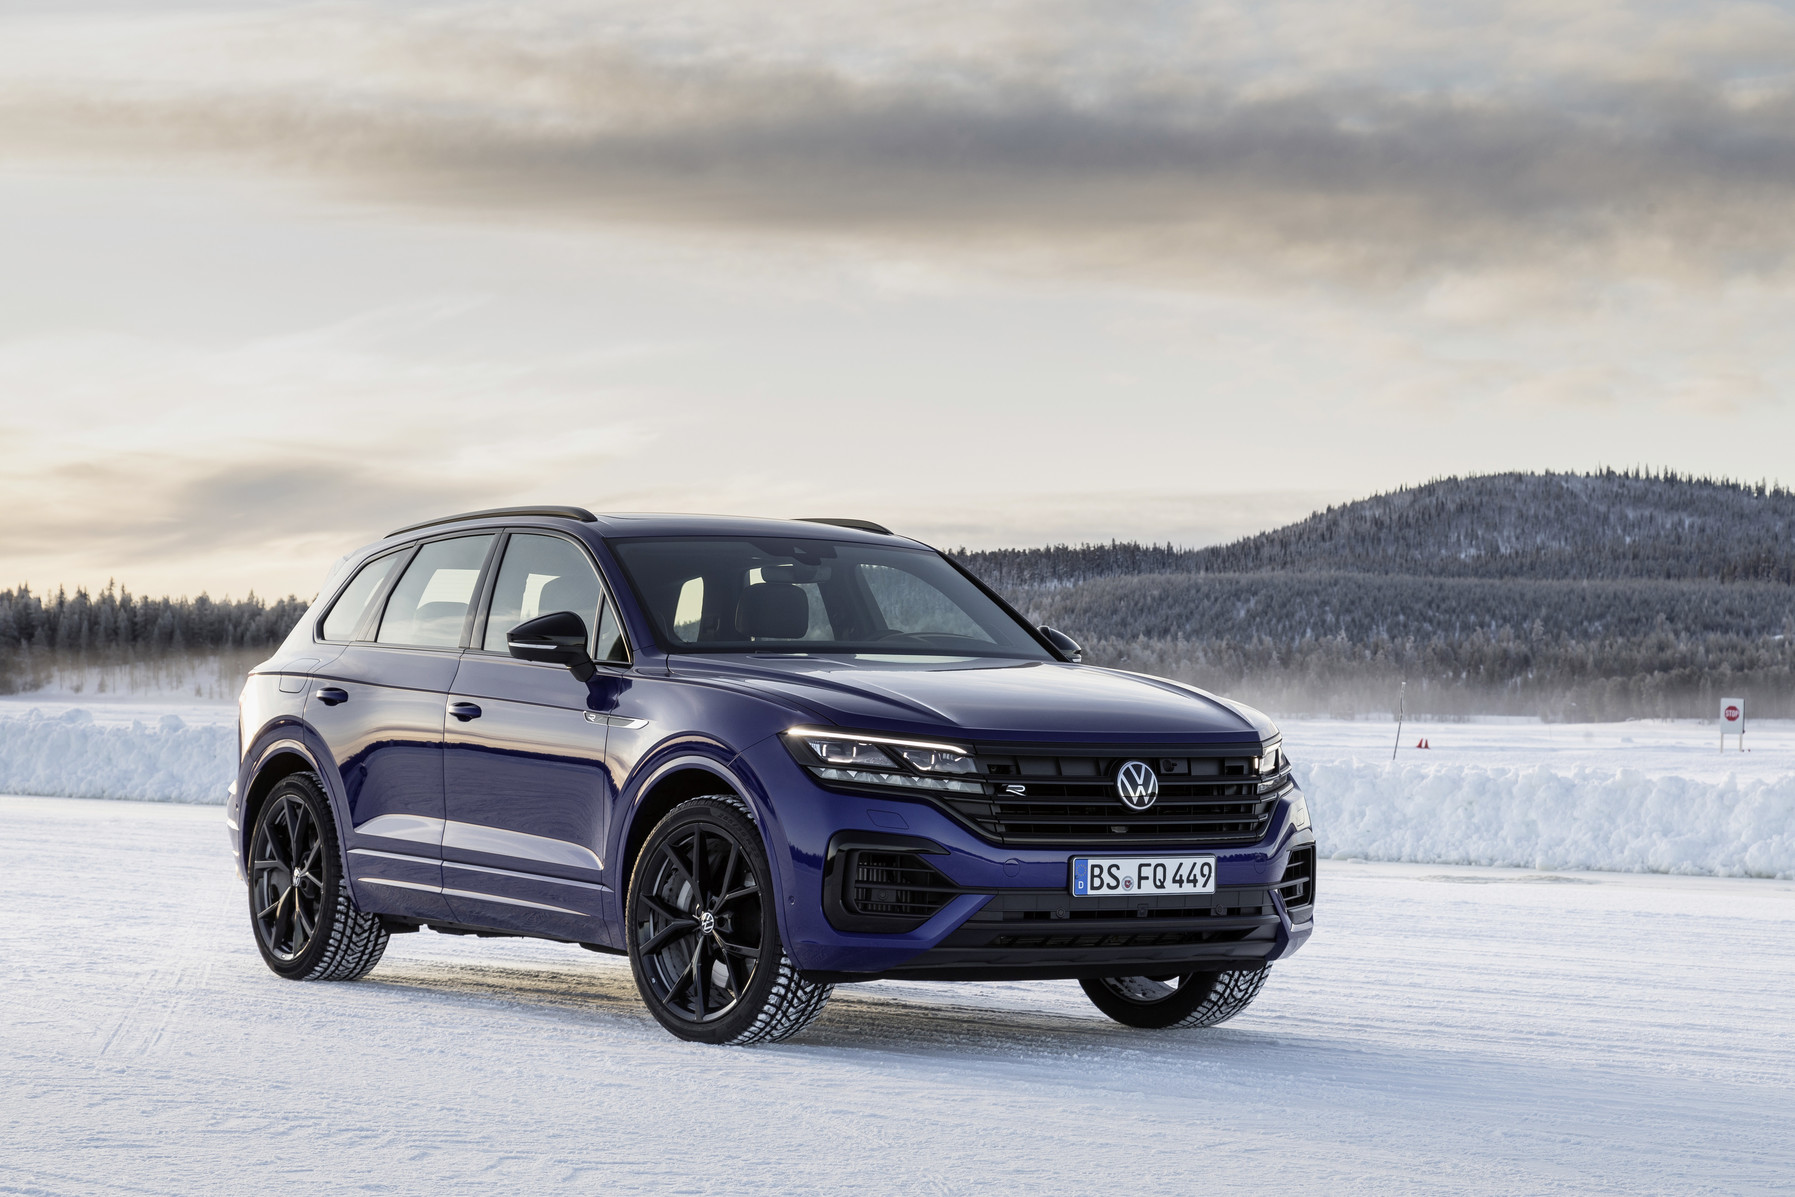 The new Volkswagen Touareg R